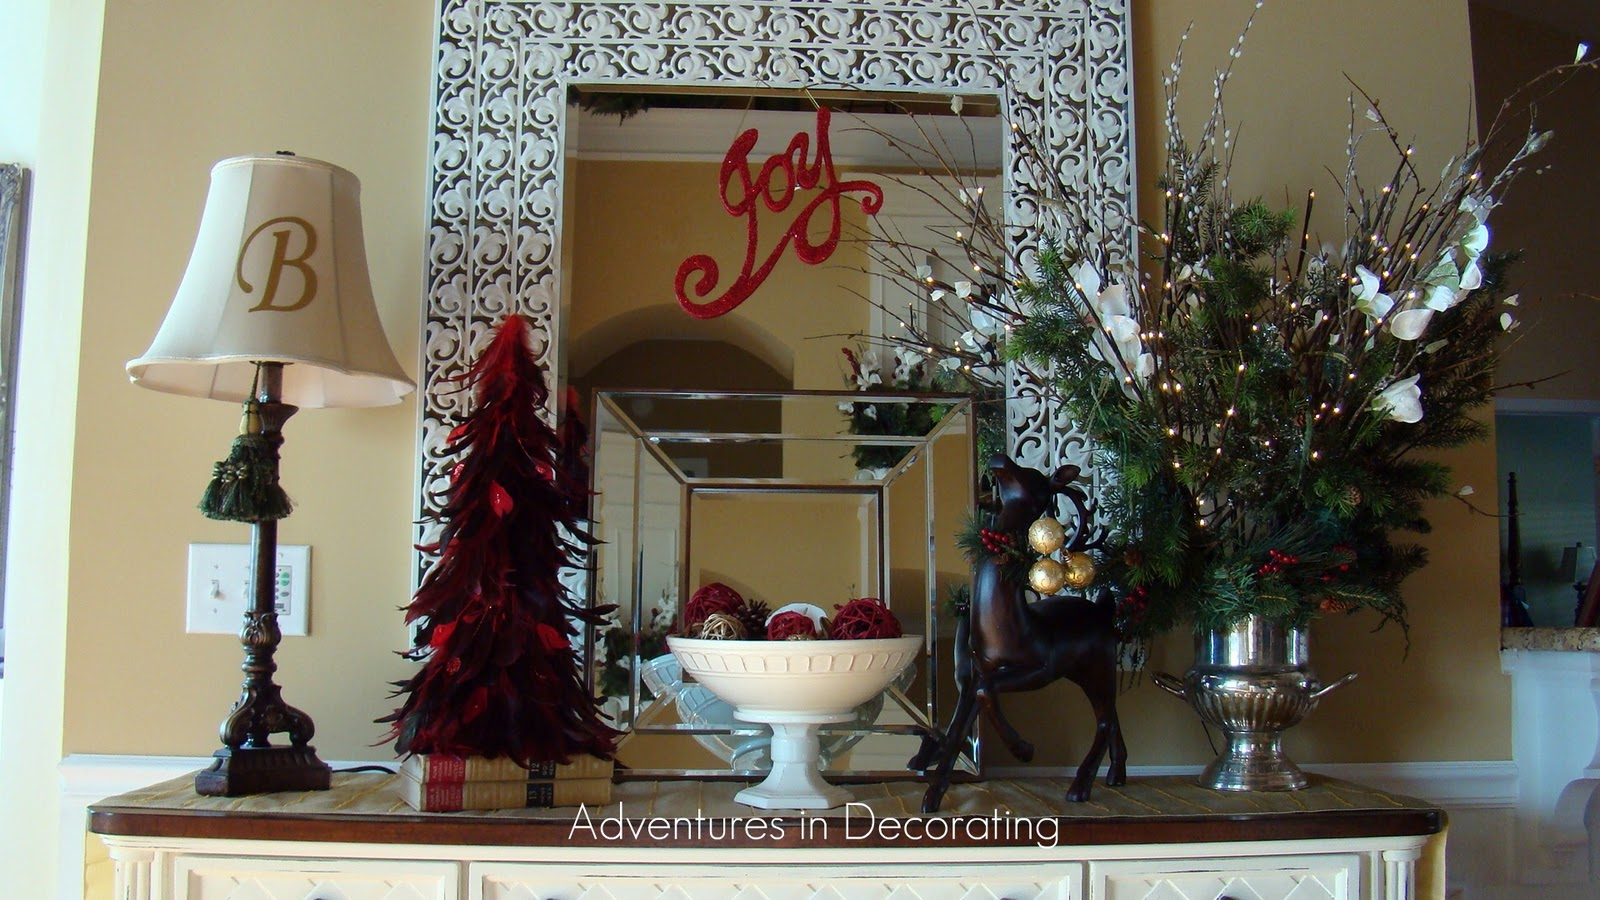 Christmas Decor For Buffet : Adventures in decorating christmas buffet